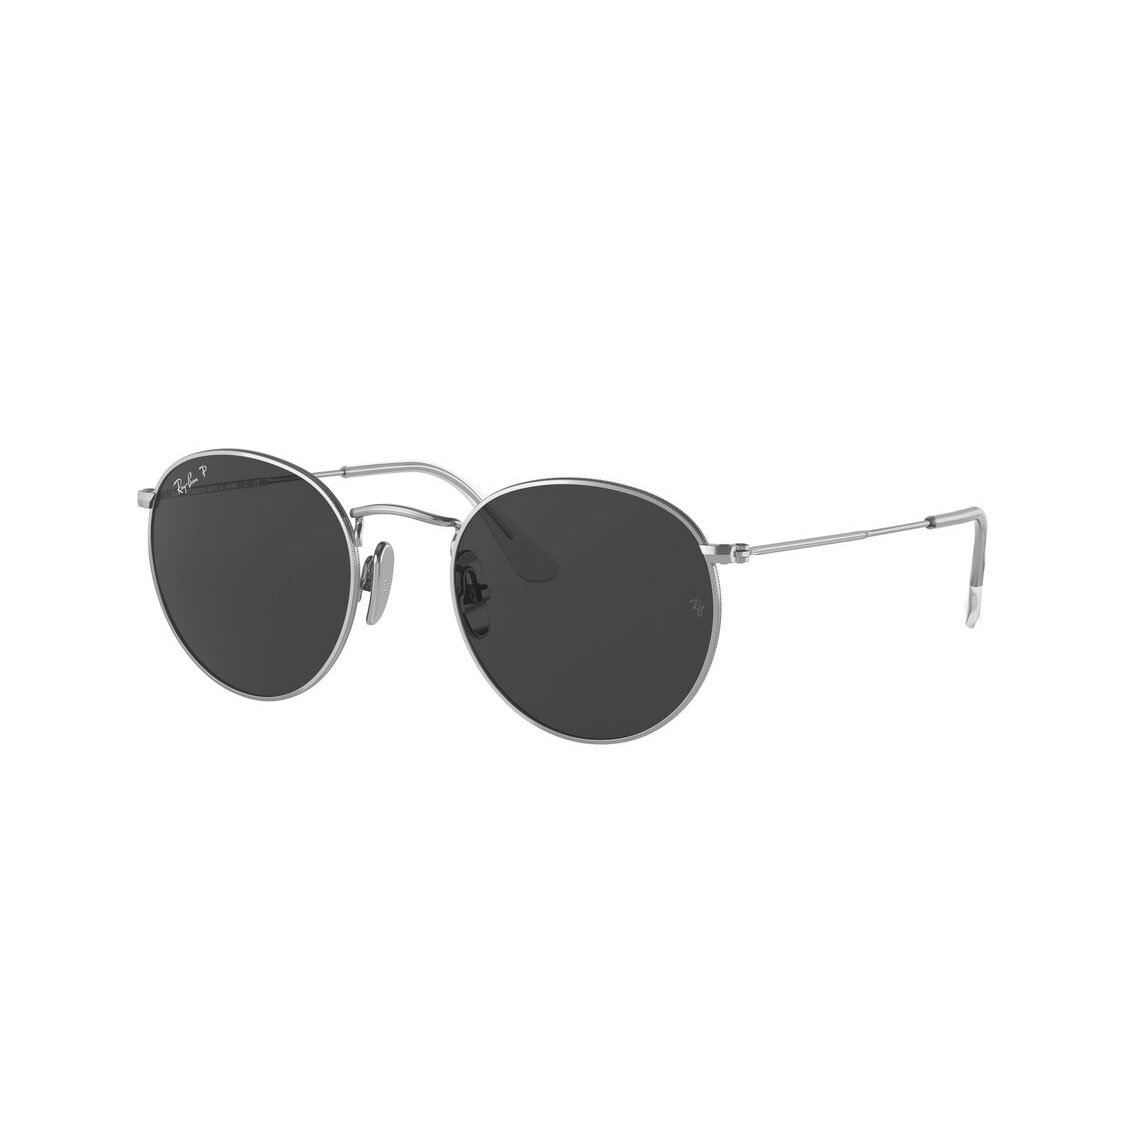 Ray-Ban Round RB8247 920948 4721